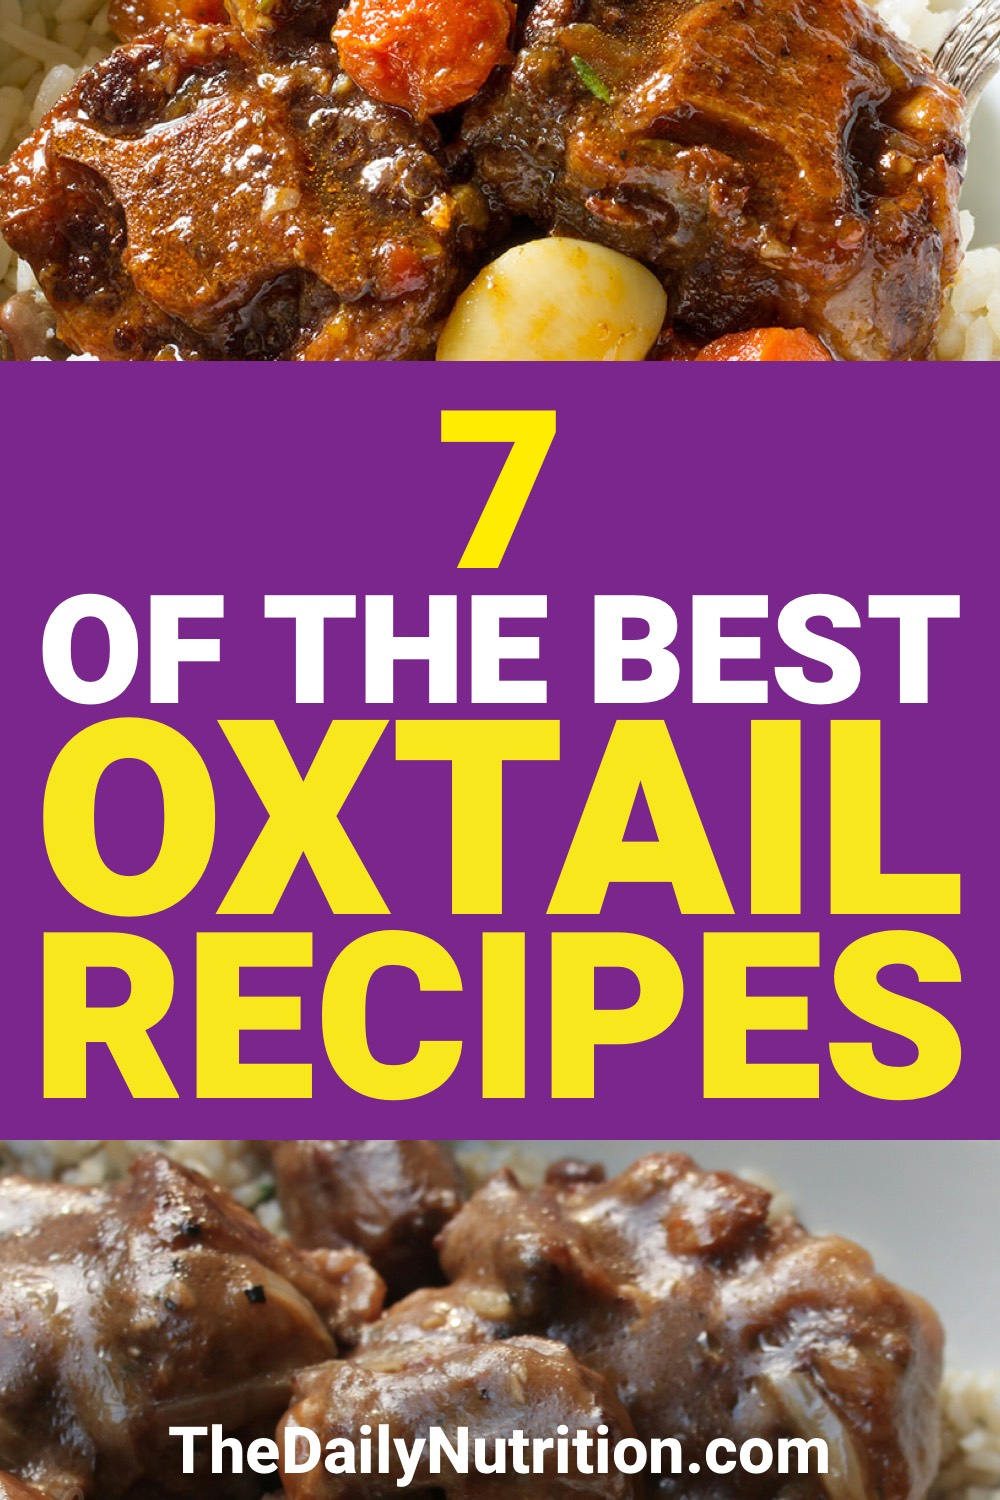 Oxtail is delicious. If you don't believe me, here are 7 oxtail recipes that will prove me right.